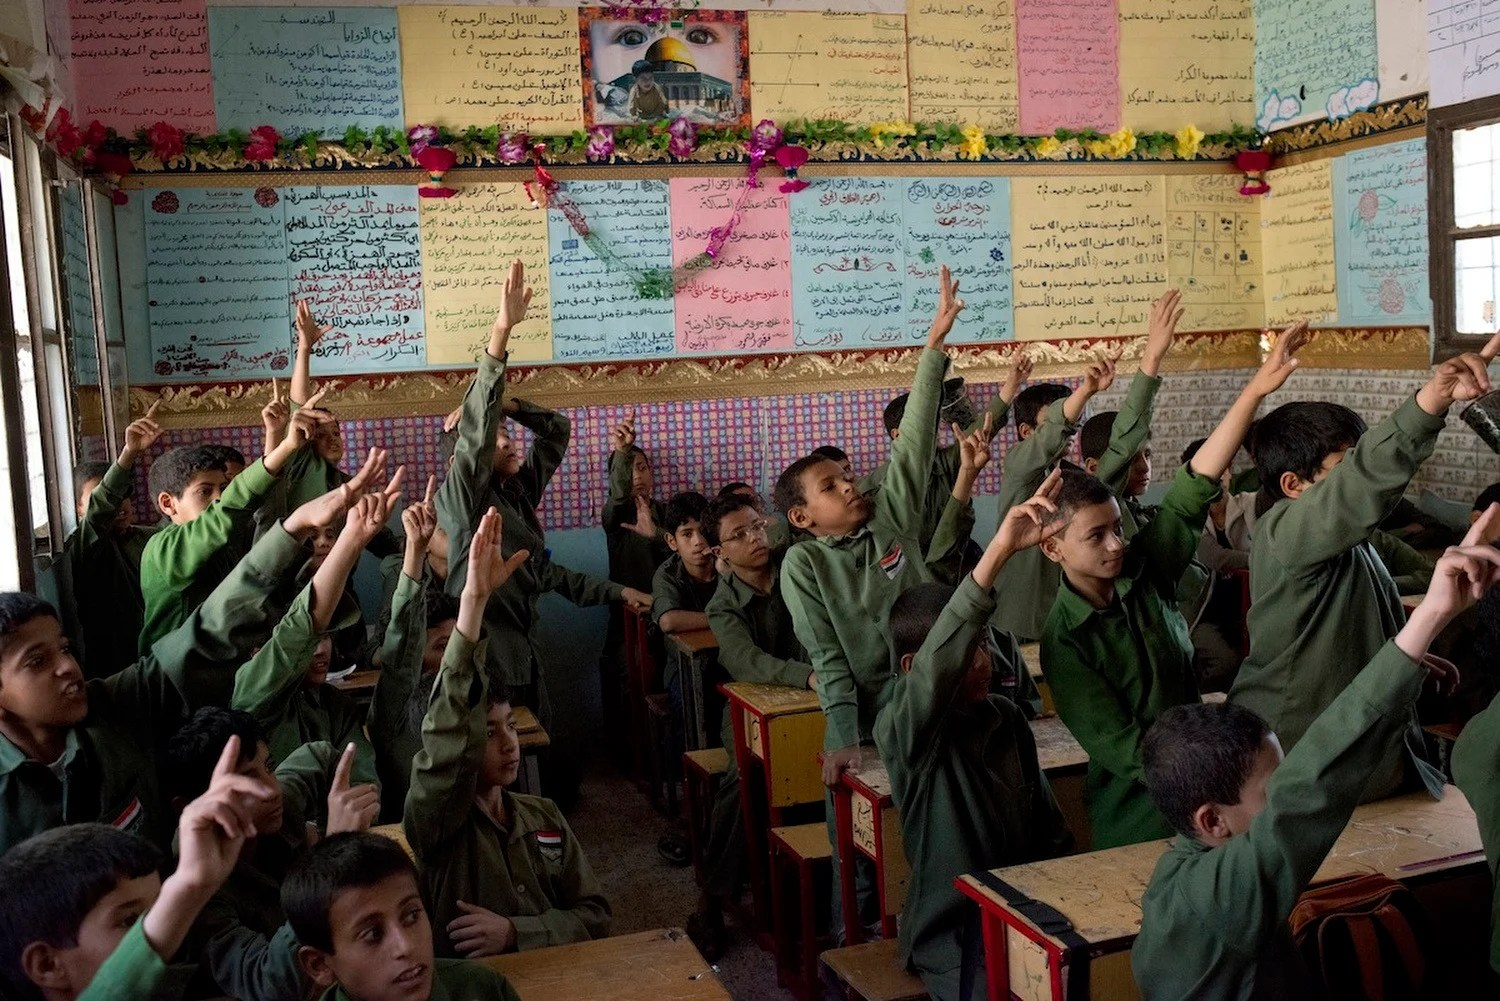 Yemeni boys raise their hands eagerly to answer a question in class. Their classroom in the Houthi-controlled area of Sa'ada is better supplied than most schools in Sana'a.